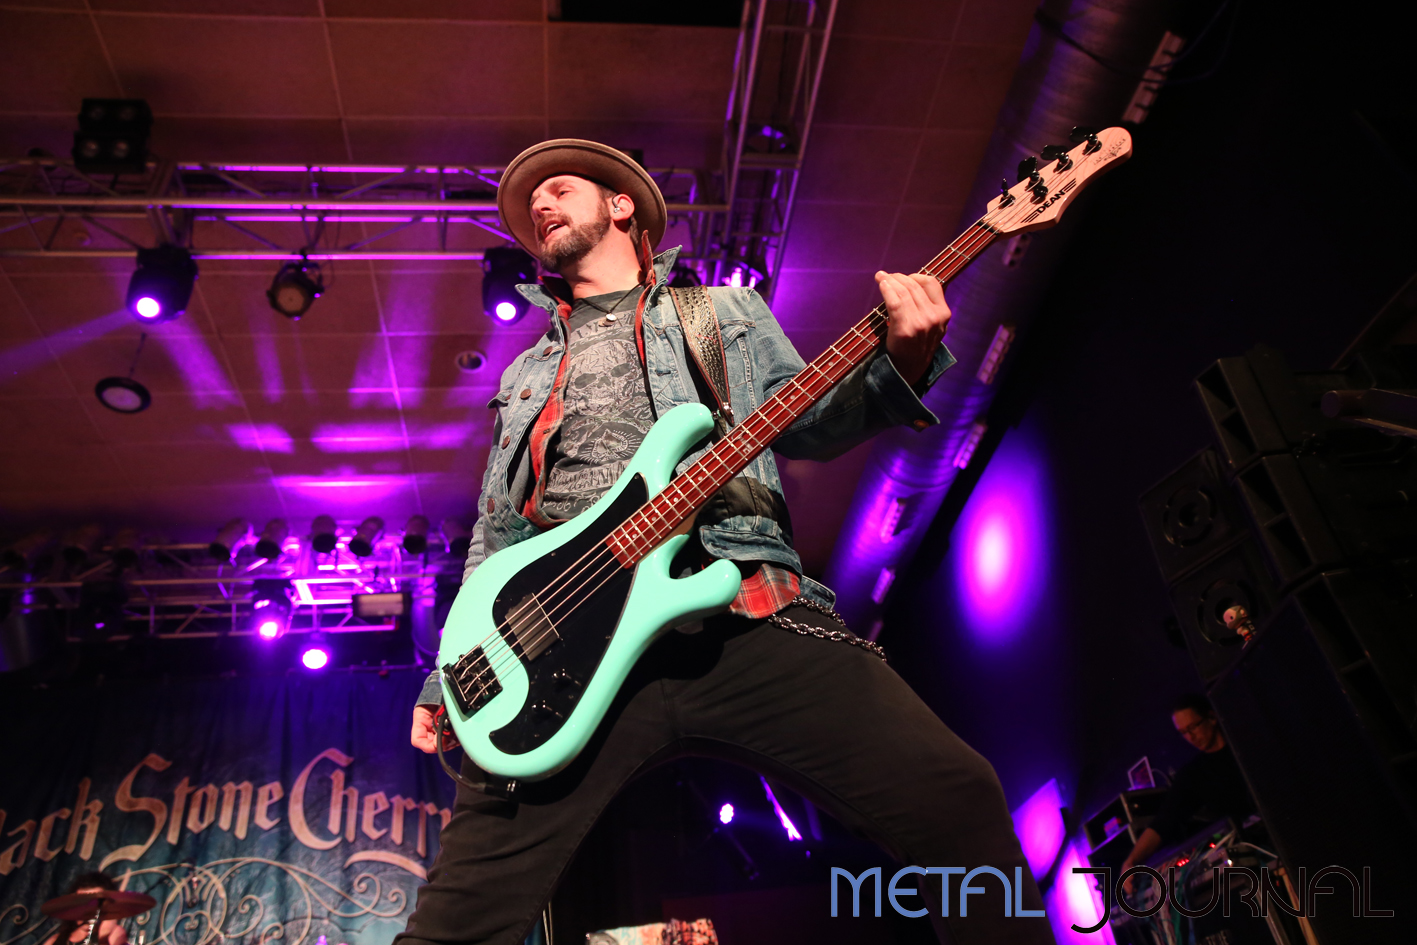 black stone cherry metal journal 2018 pic 8